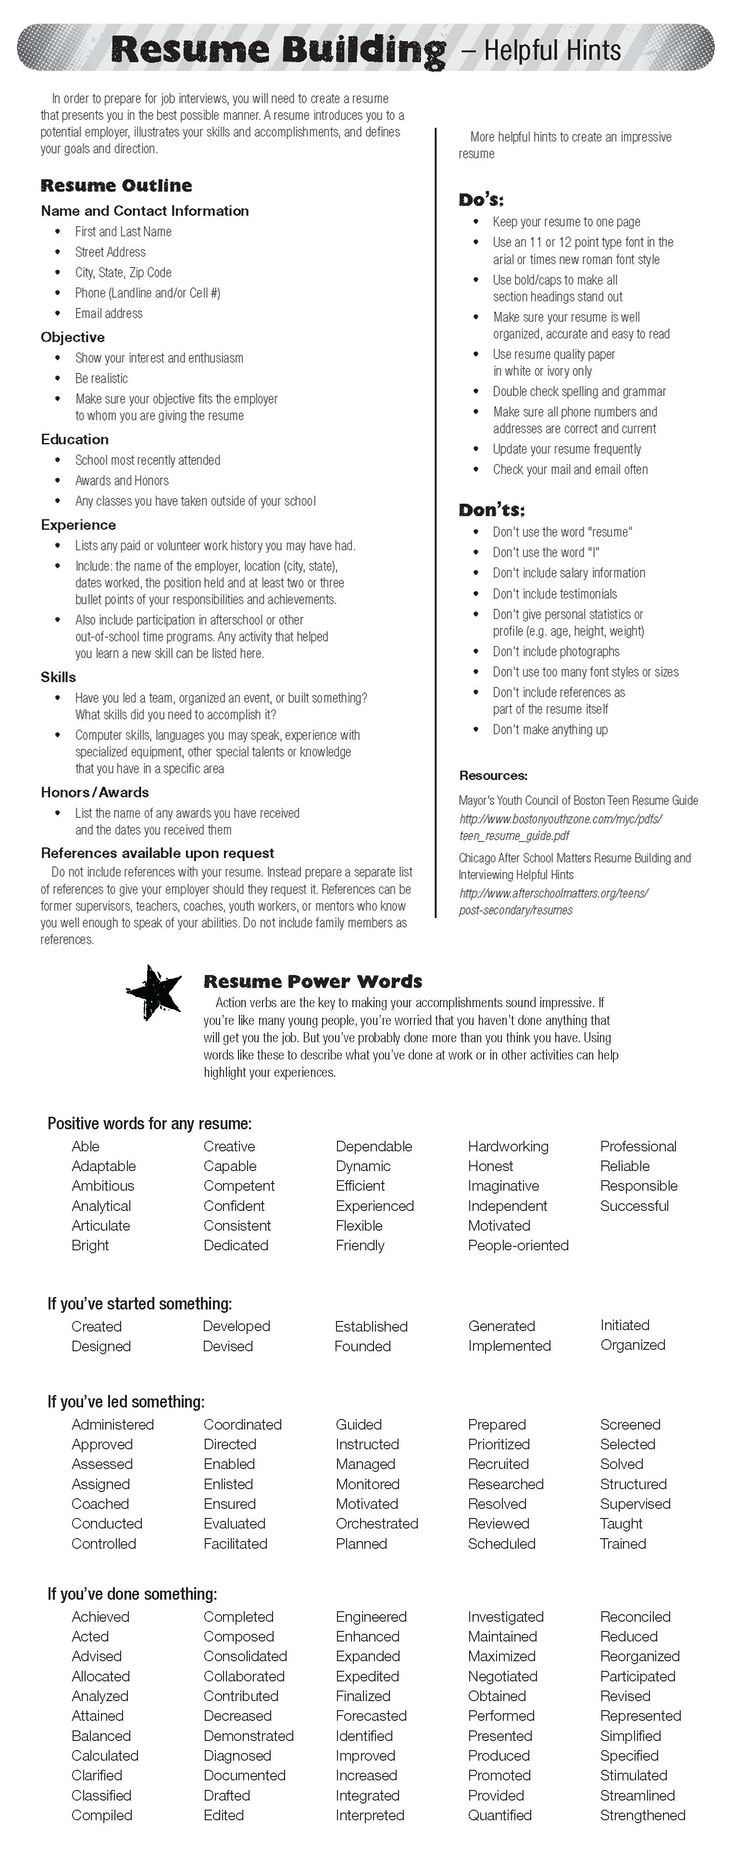 Opposenewapstandardsus  Winsome  Ideas About Resume On Pinterest  Cv Format Resume  With Remarkable Check Out Todays Resume Building Tips Resume Resumepowerwords With Agreeable Flight Attendant Resume Also Resume Music In Addition Manager Resume And Power Words For Resume As Well As Skills To List On A Resume Additionally Simple Resume Format From Pinterestcom With Opposenewapstandardsus  Remarkable  Ideas About Resume On Pinterest  Cv Format Resume  With Agreeable Check Out Todays Resume Building Tips Resume Resumepowerwords And Winsome Flight Attendant Resume Also Resume Music In Addition Manager Resume From Pinterestcom